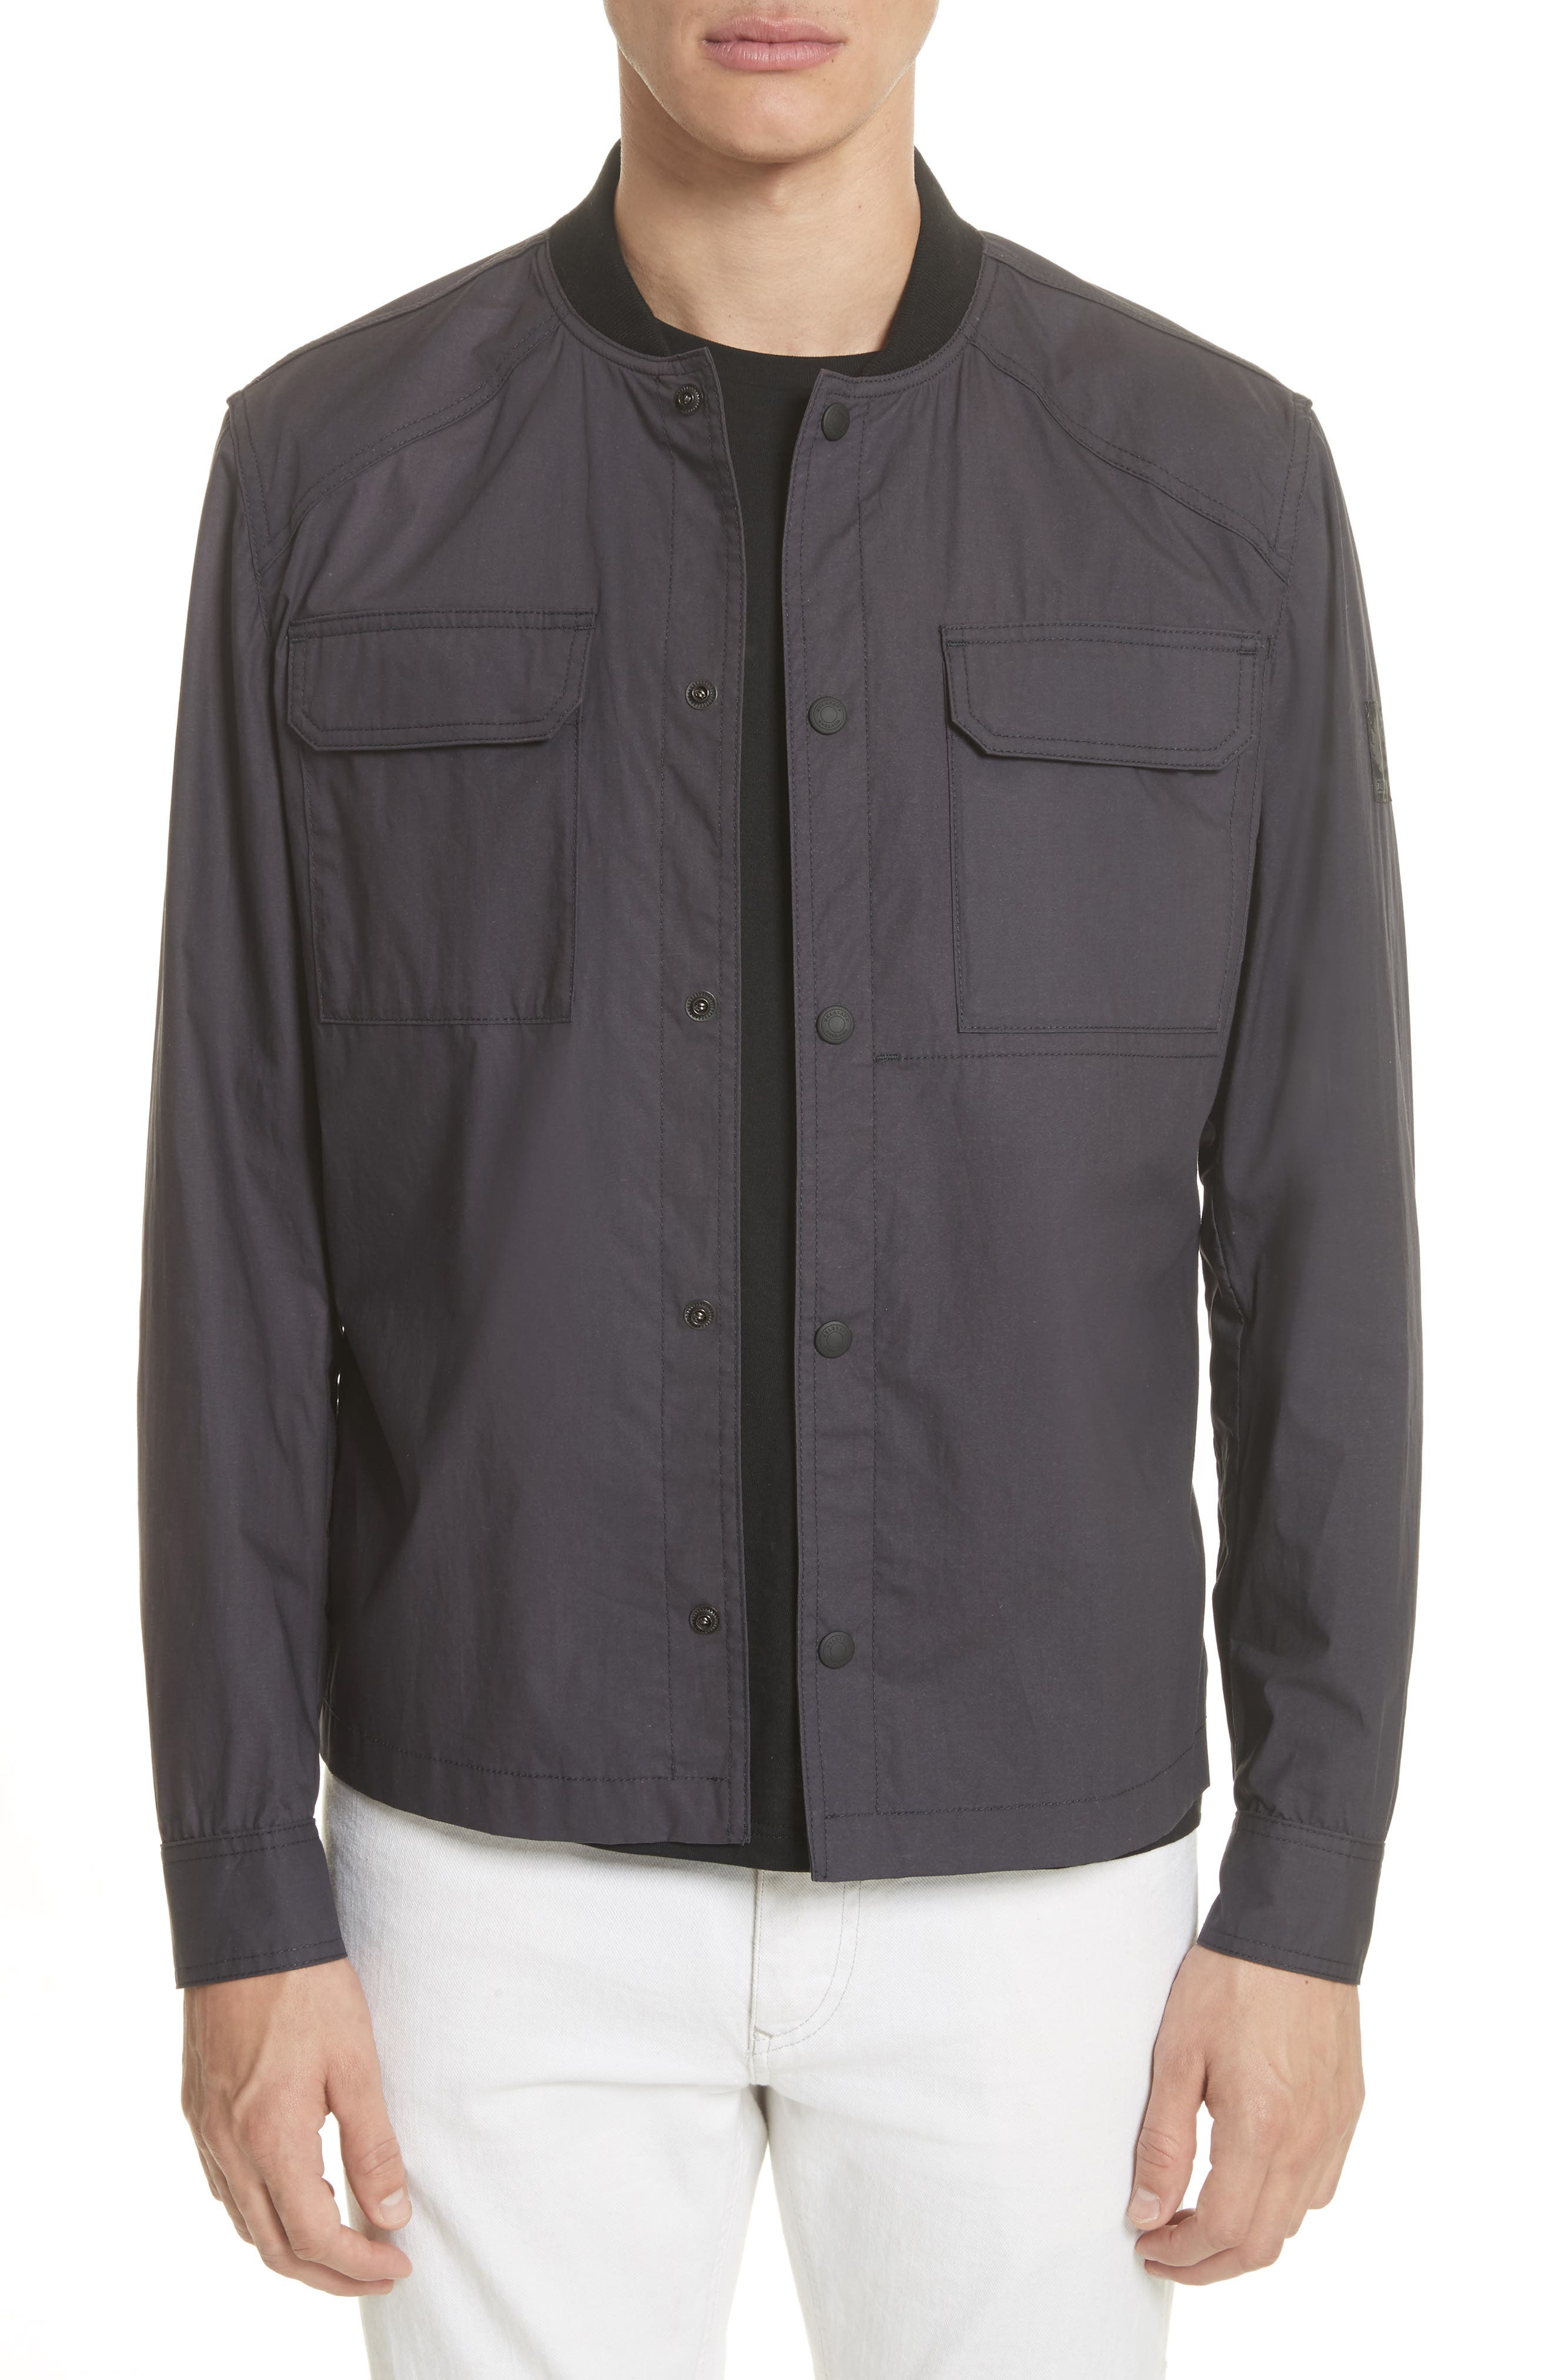 Cardingham Jacket,                             Main thumbnail 1, color,                             Charcoal